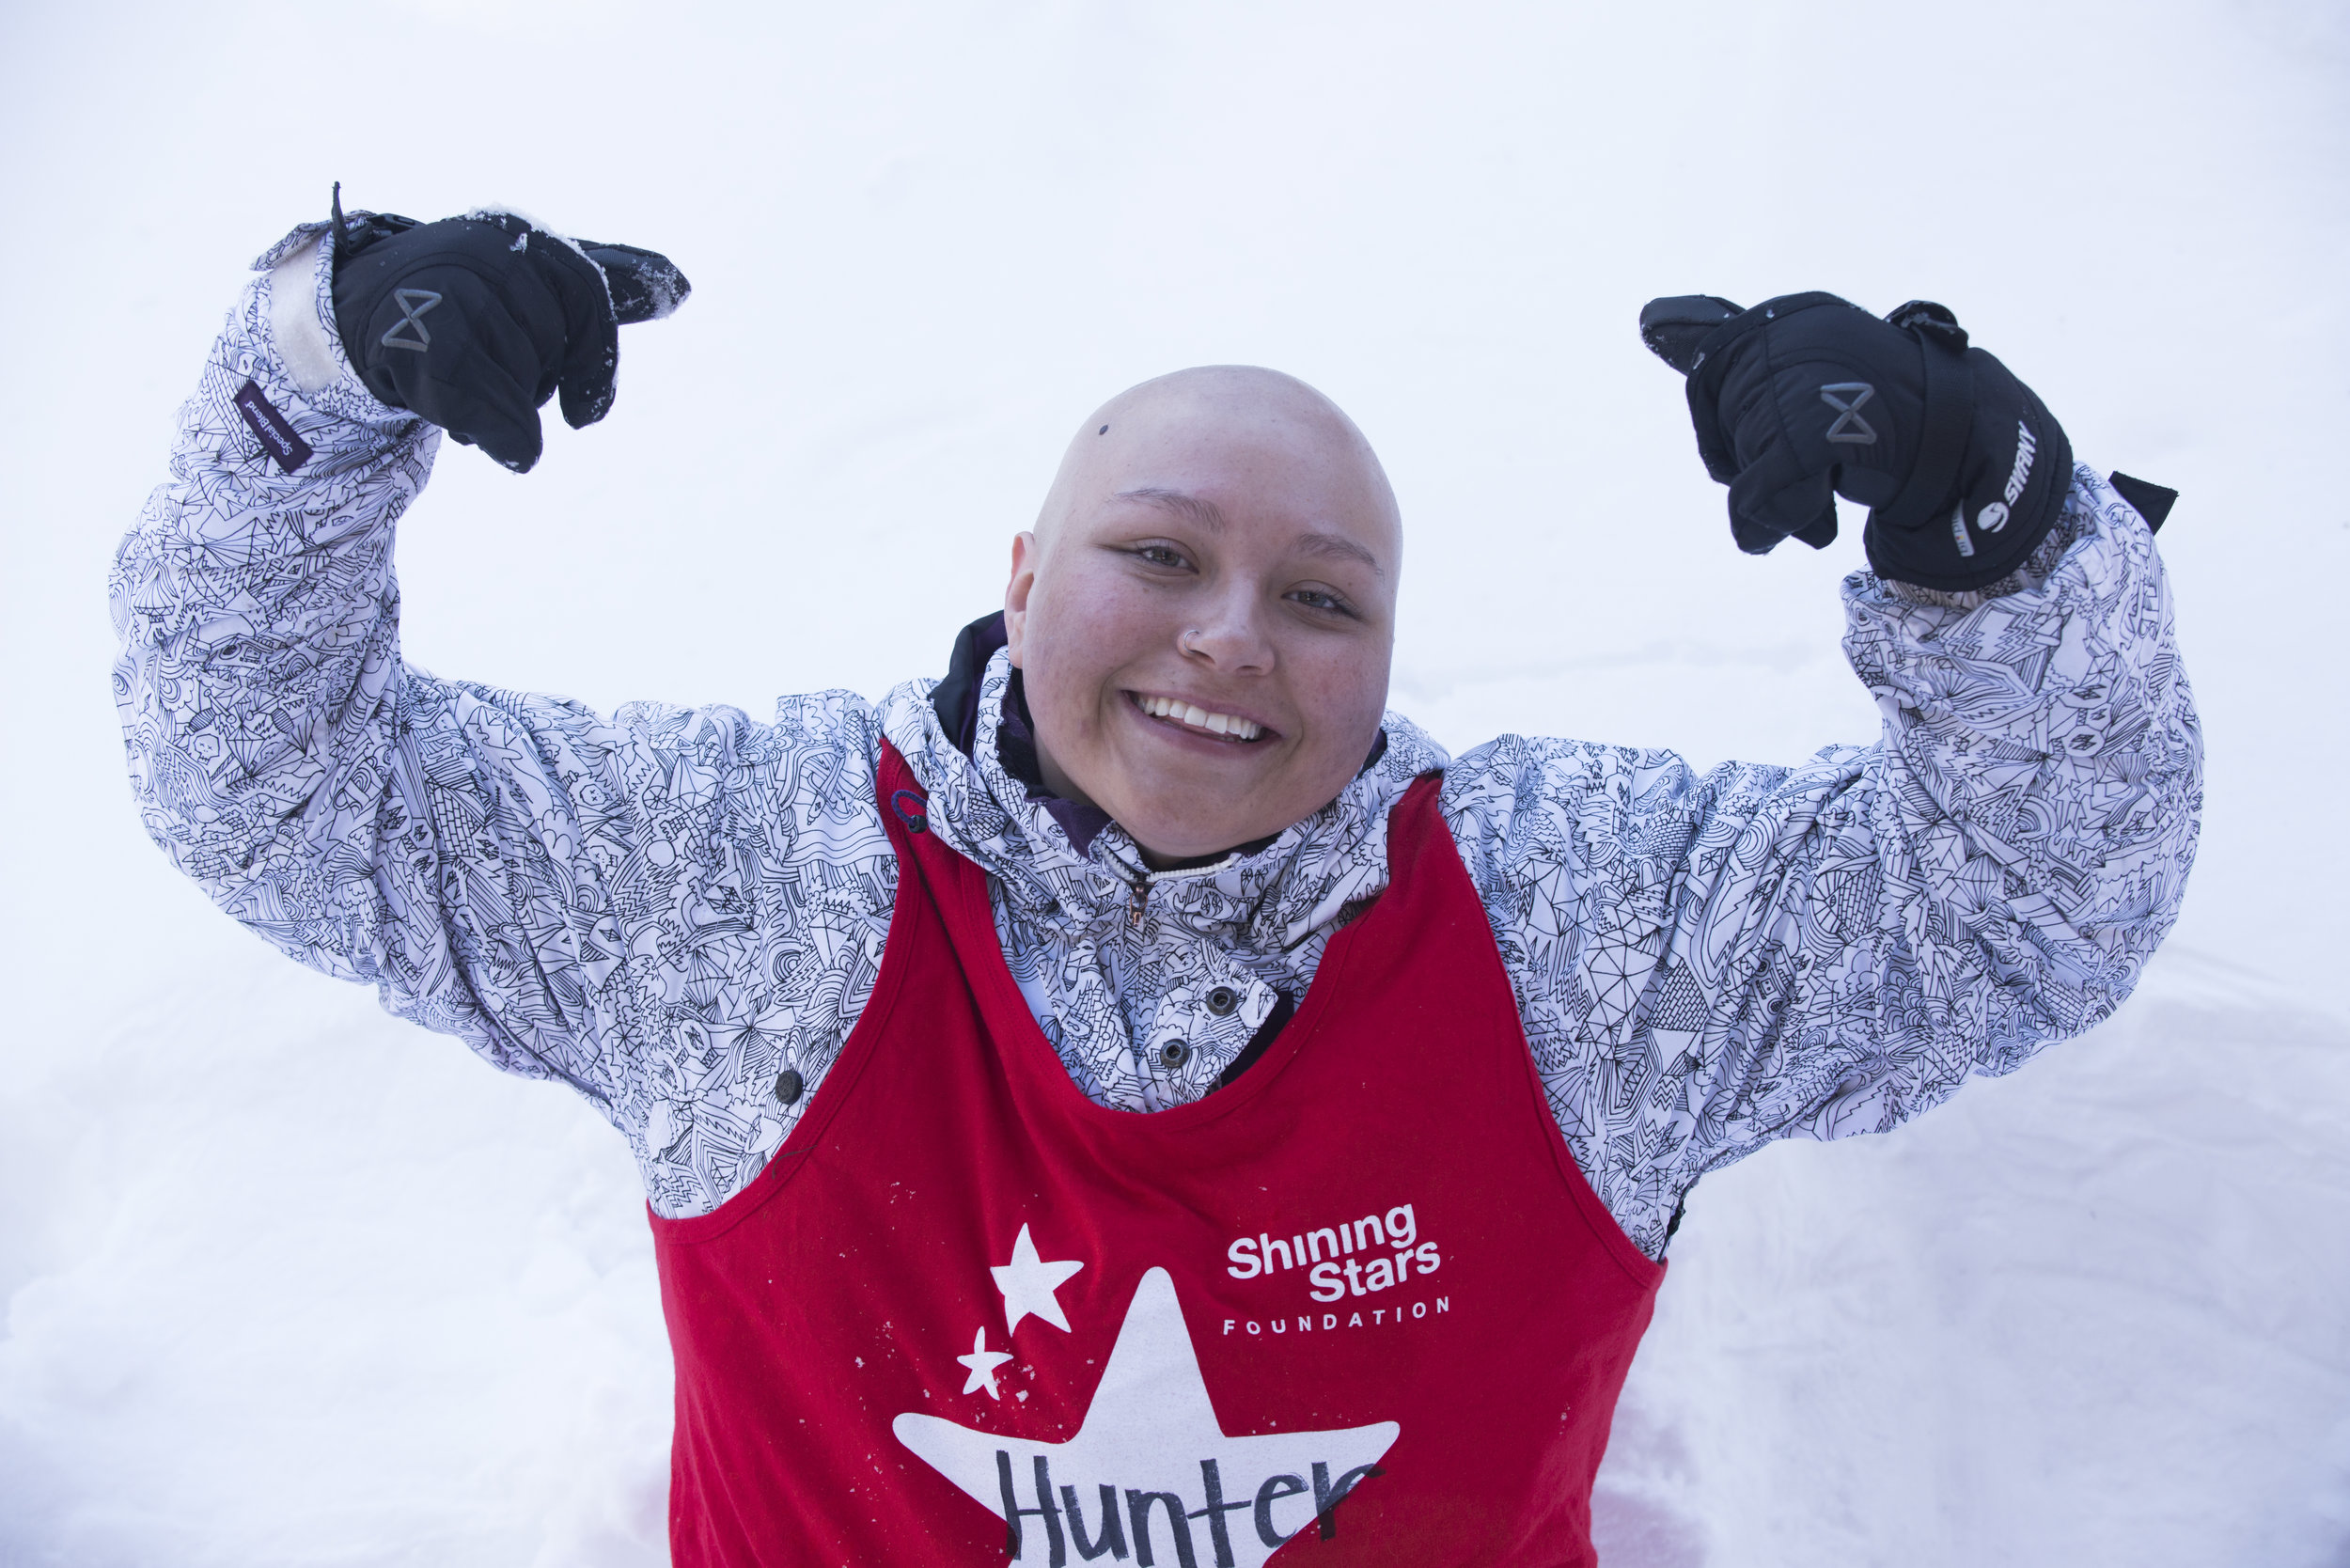 We loved meeting Hunter at this year's Aspen Winter Games program.